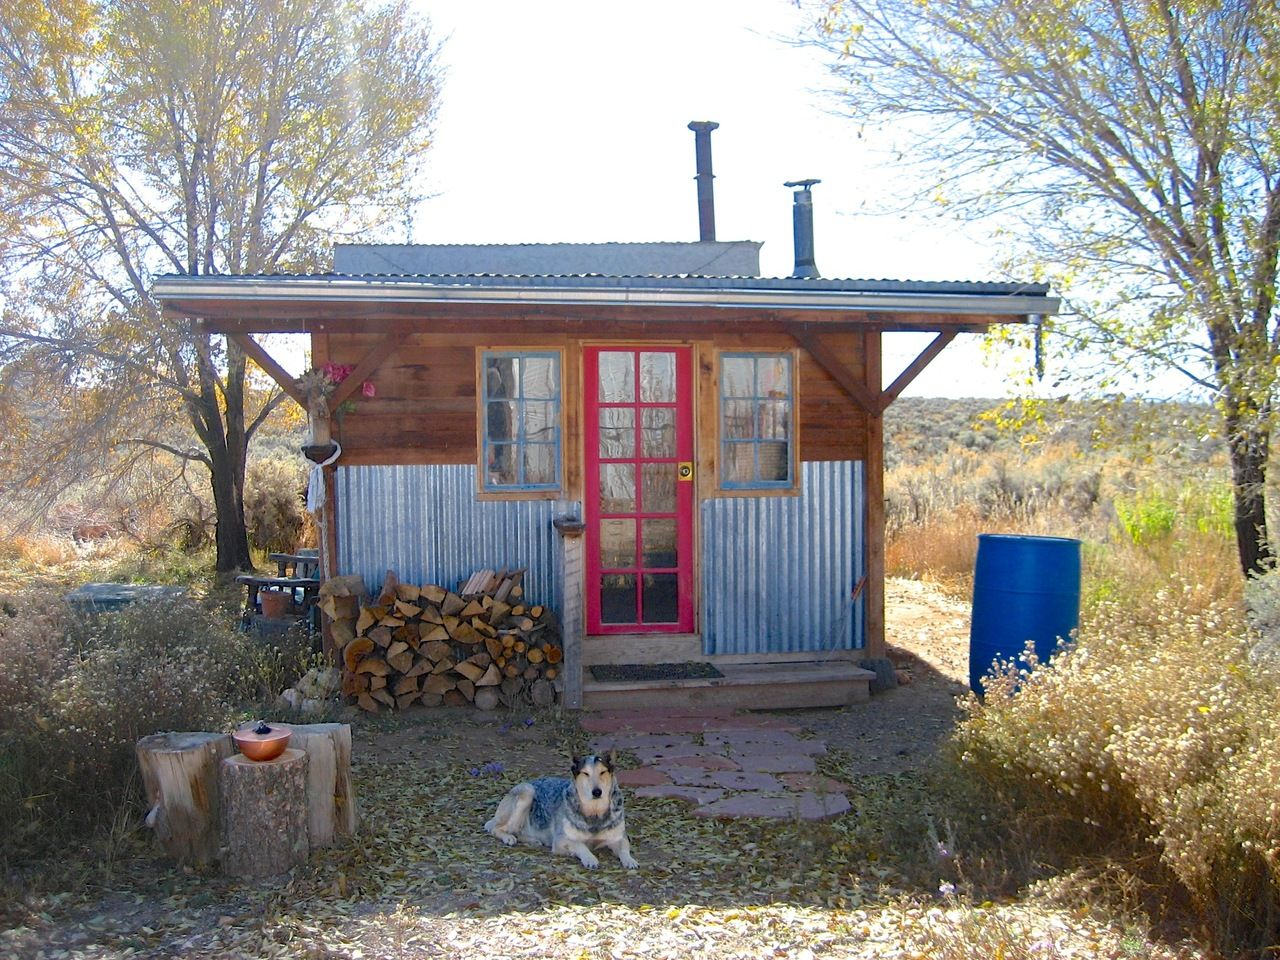 A homestead near taos new mexico submitted for Cabins in taos nm